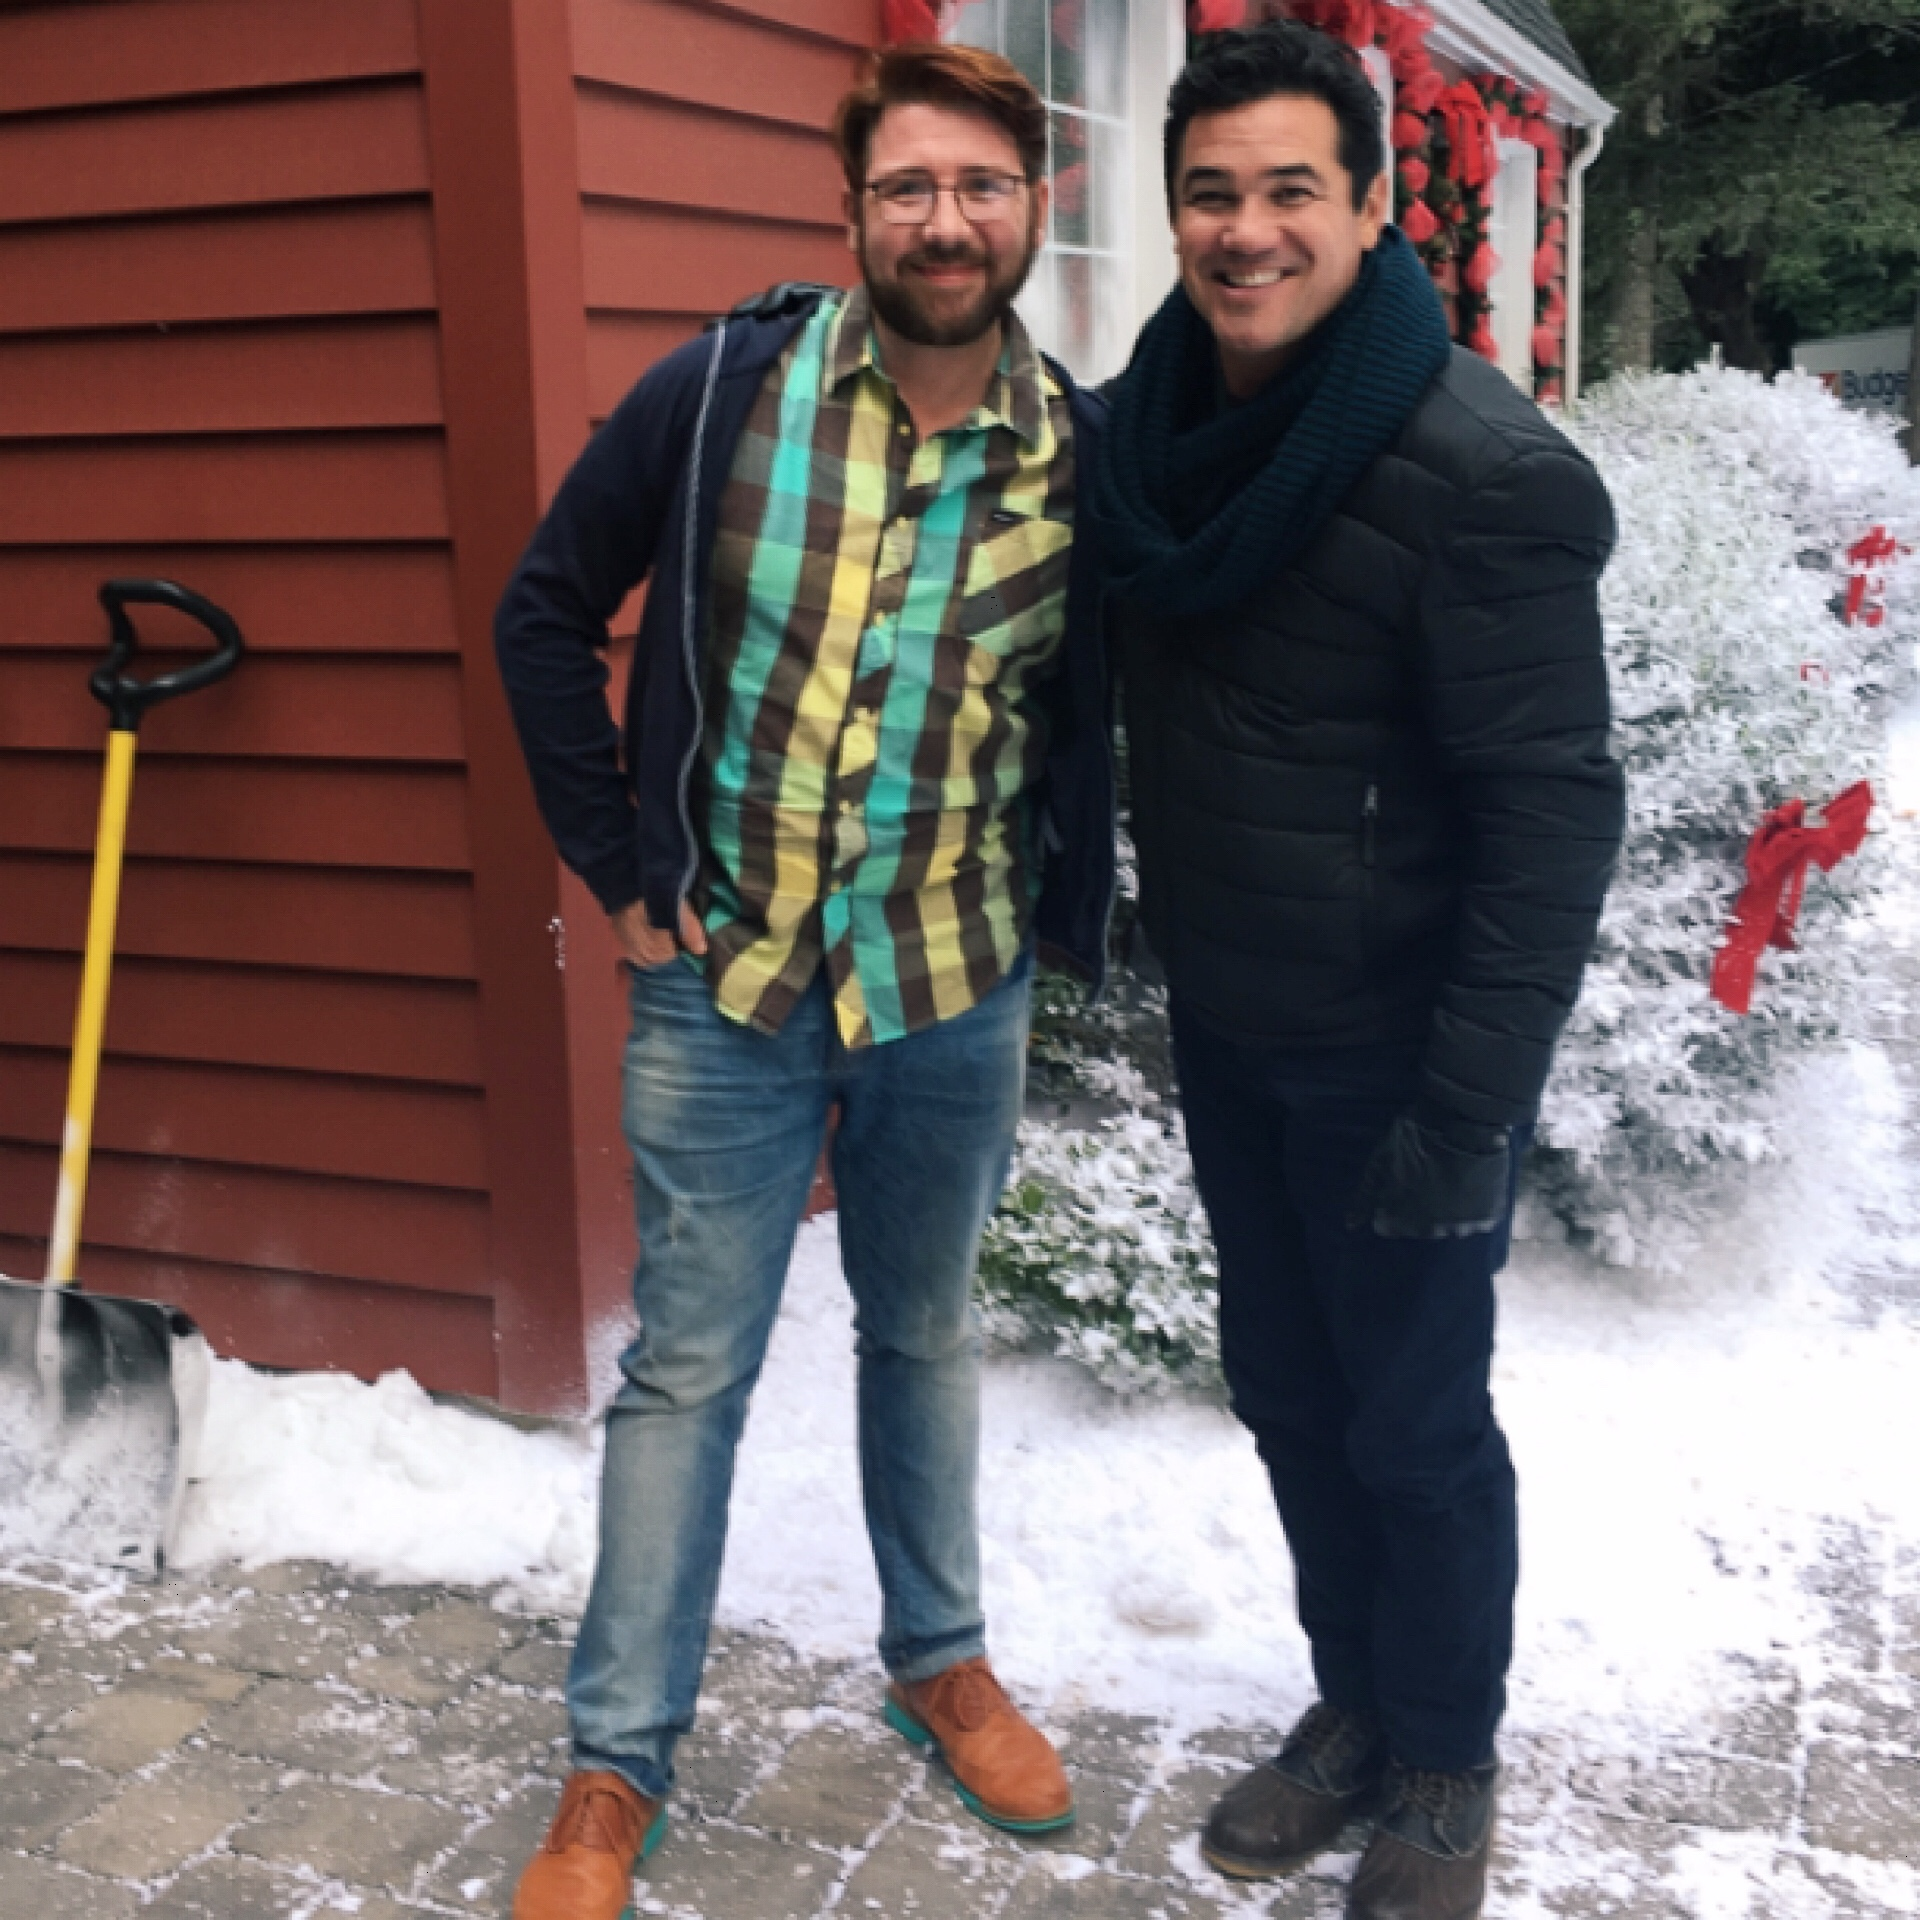 """Broadcasting Christmas"" screenwriter Topher Payne and star Dean Cain. Courtesy: Topher Payne"